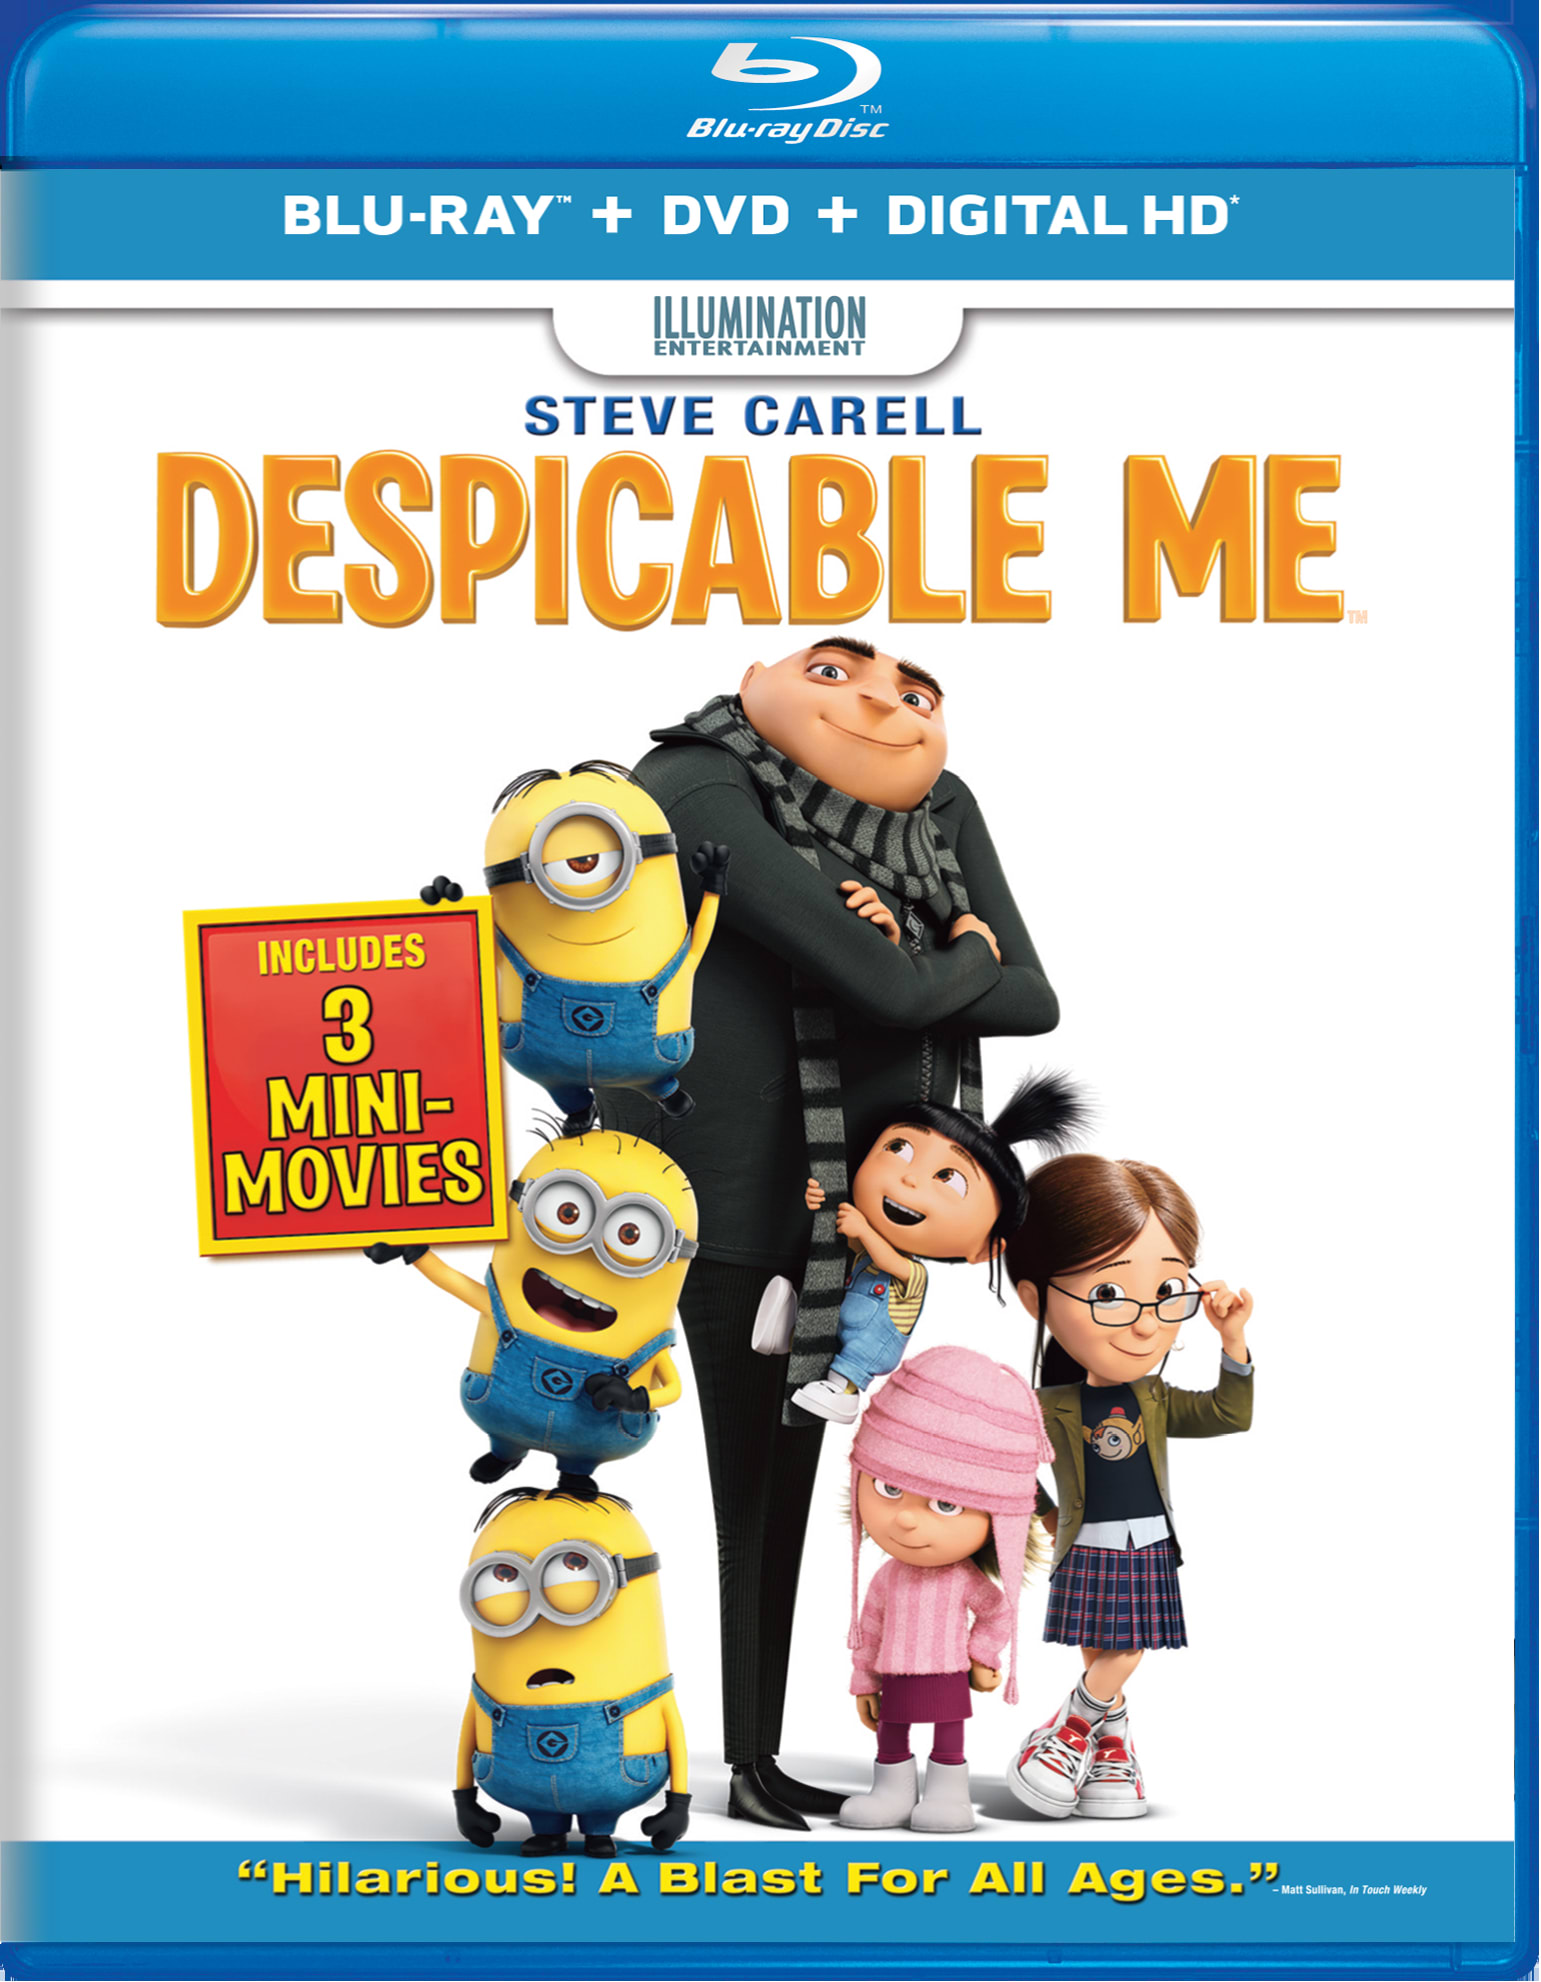 Despicable Me (DVD + Digital) [Blu-ray]